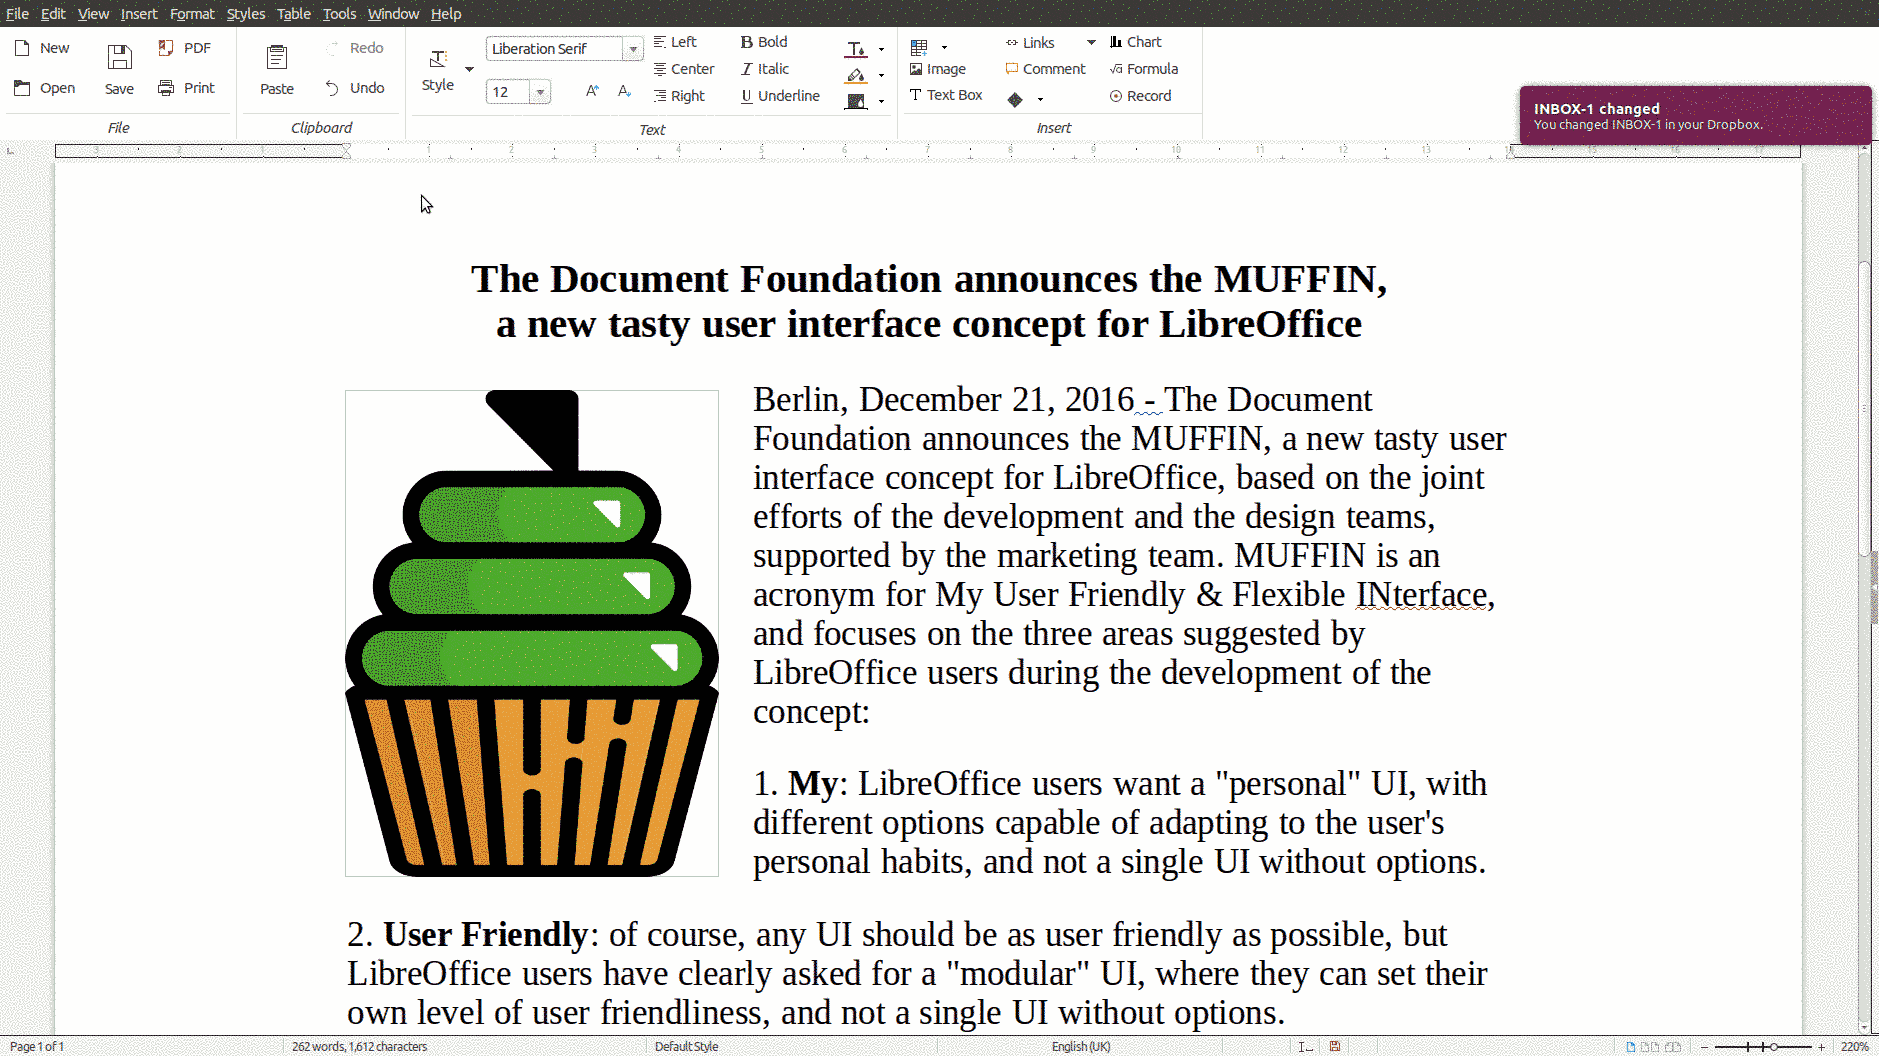 LibreOffice LibreOffice 宣布新用户界面 MUFFIN